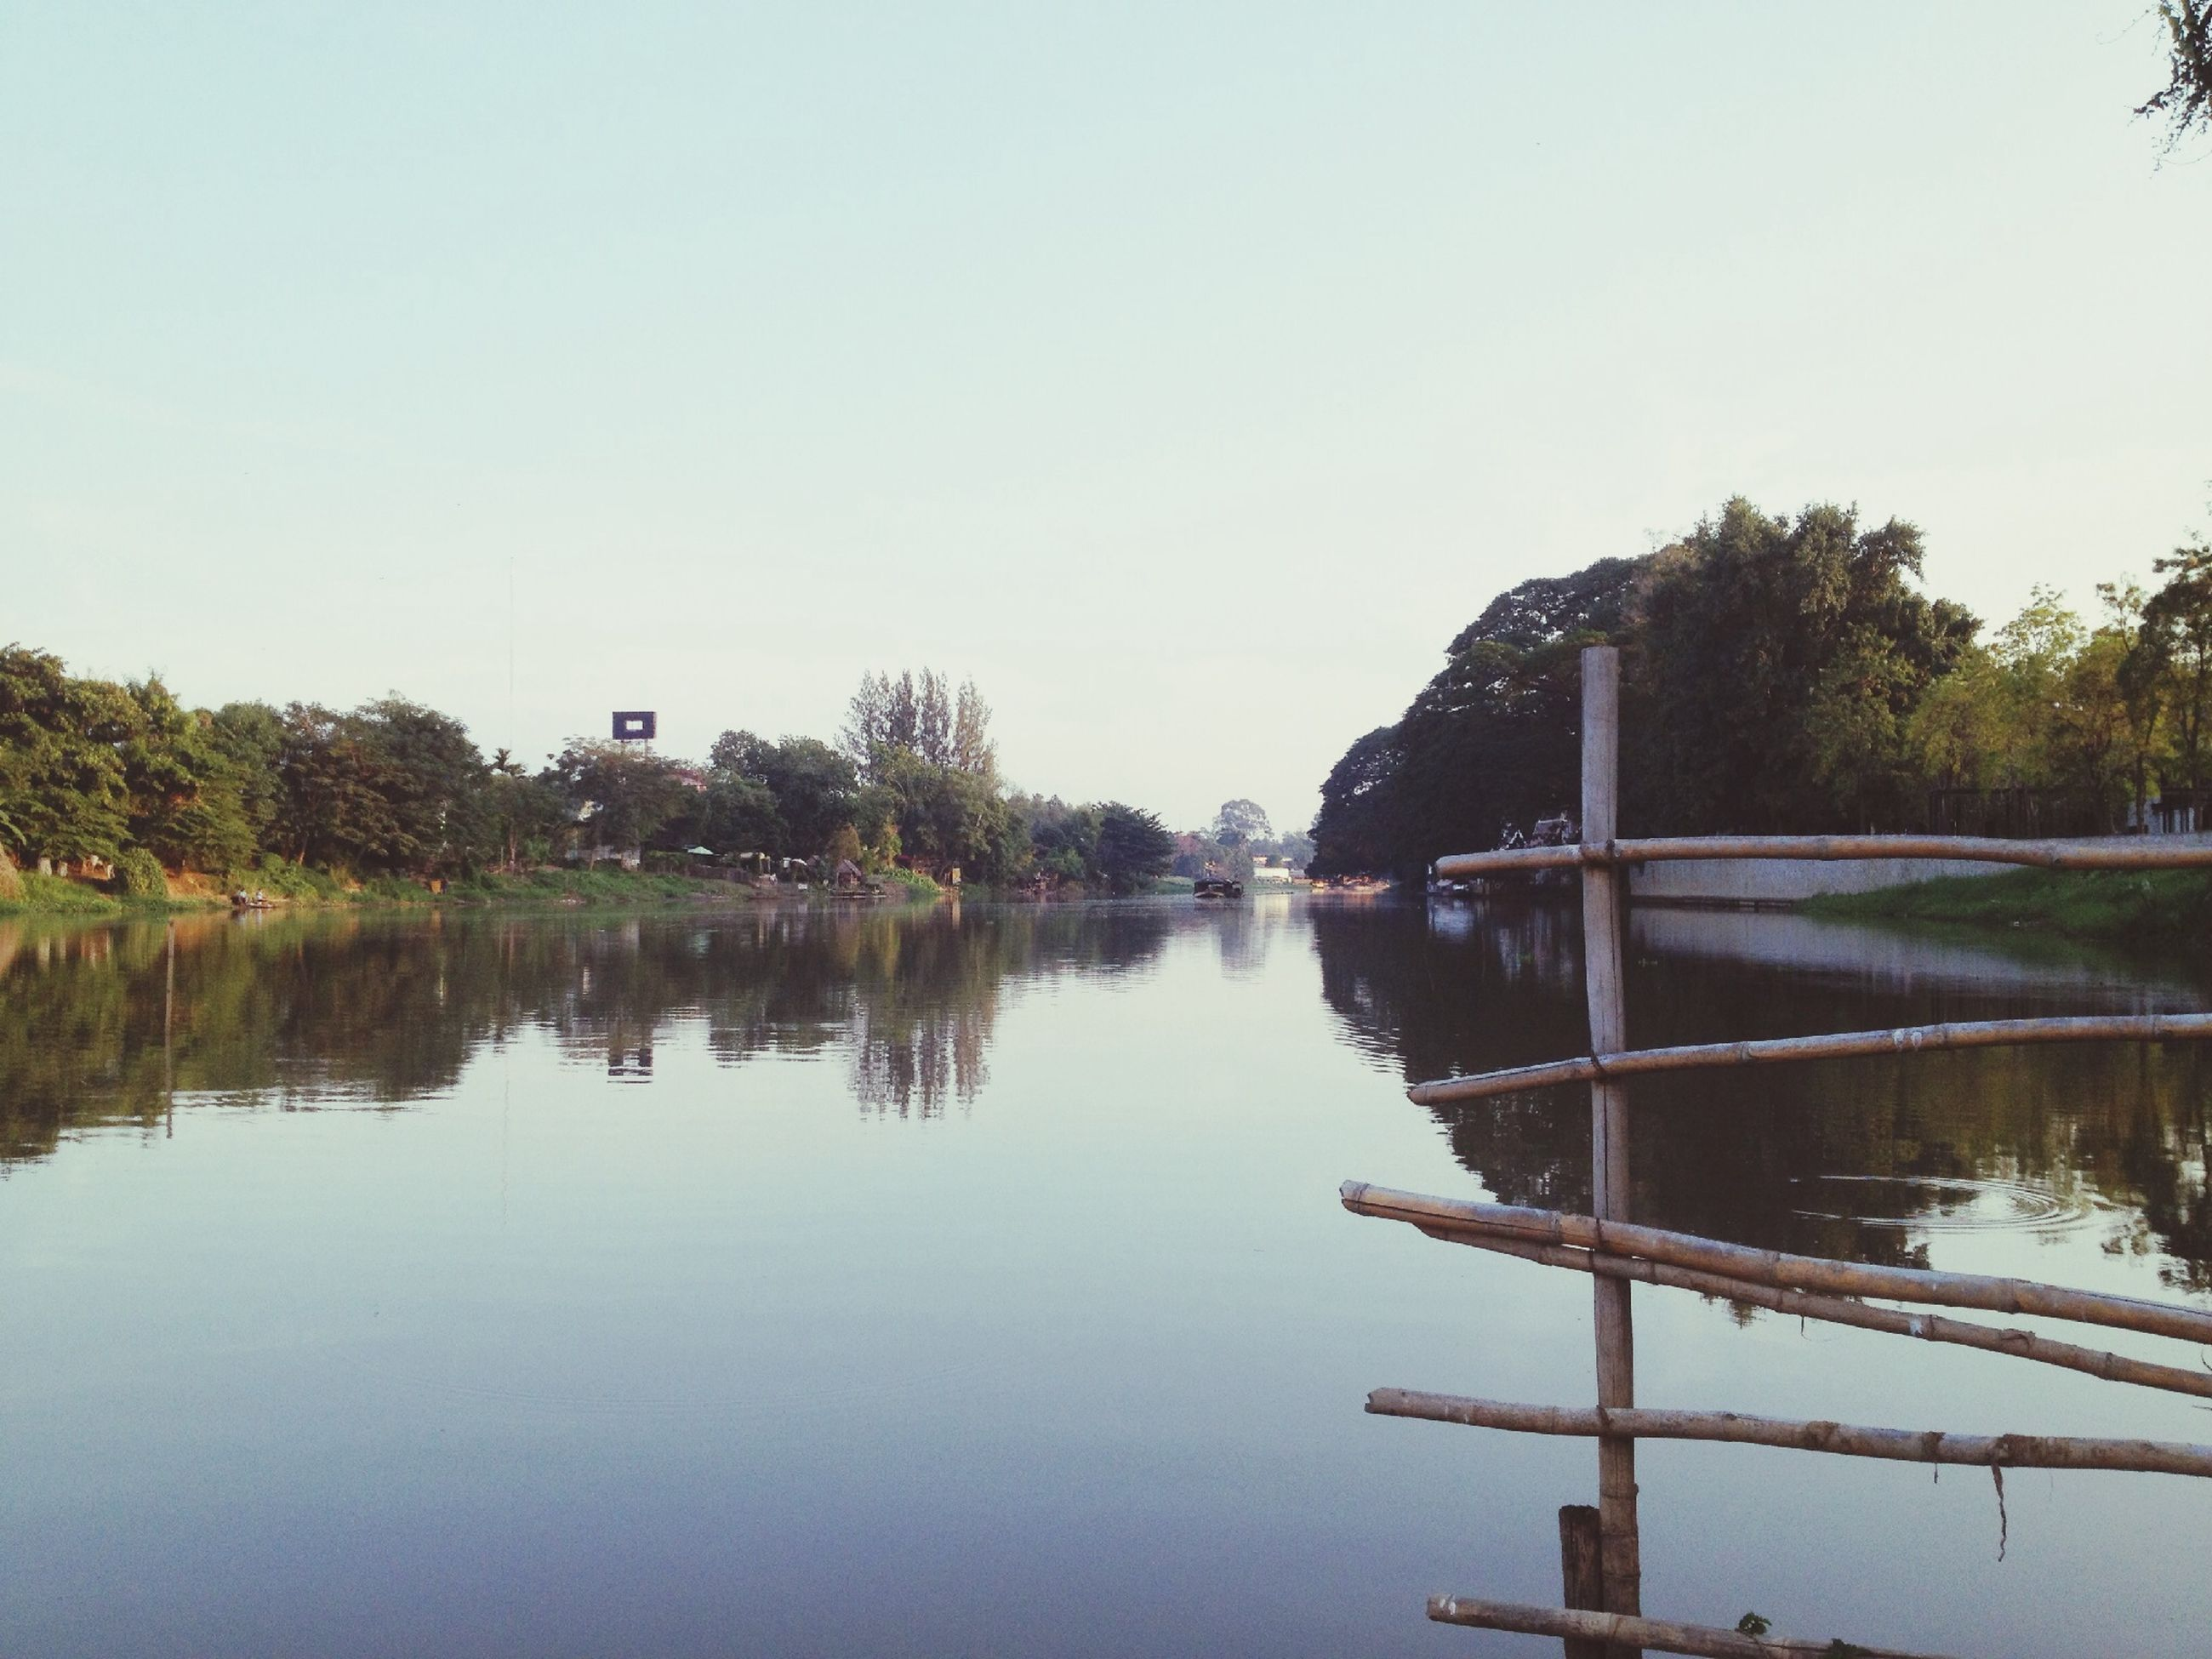 water, clear sky, reflection, lake, tree, waterfront, copy space, tranquility, built structure, tranquil scene, river, architecture, nature, scenics, beauty in nature, standing water, calm, day, outdoors, no people